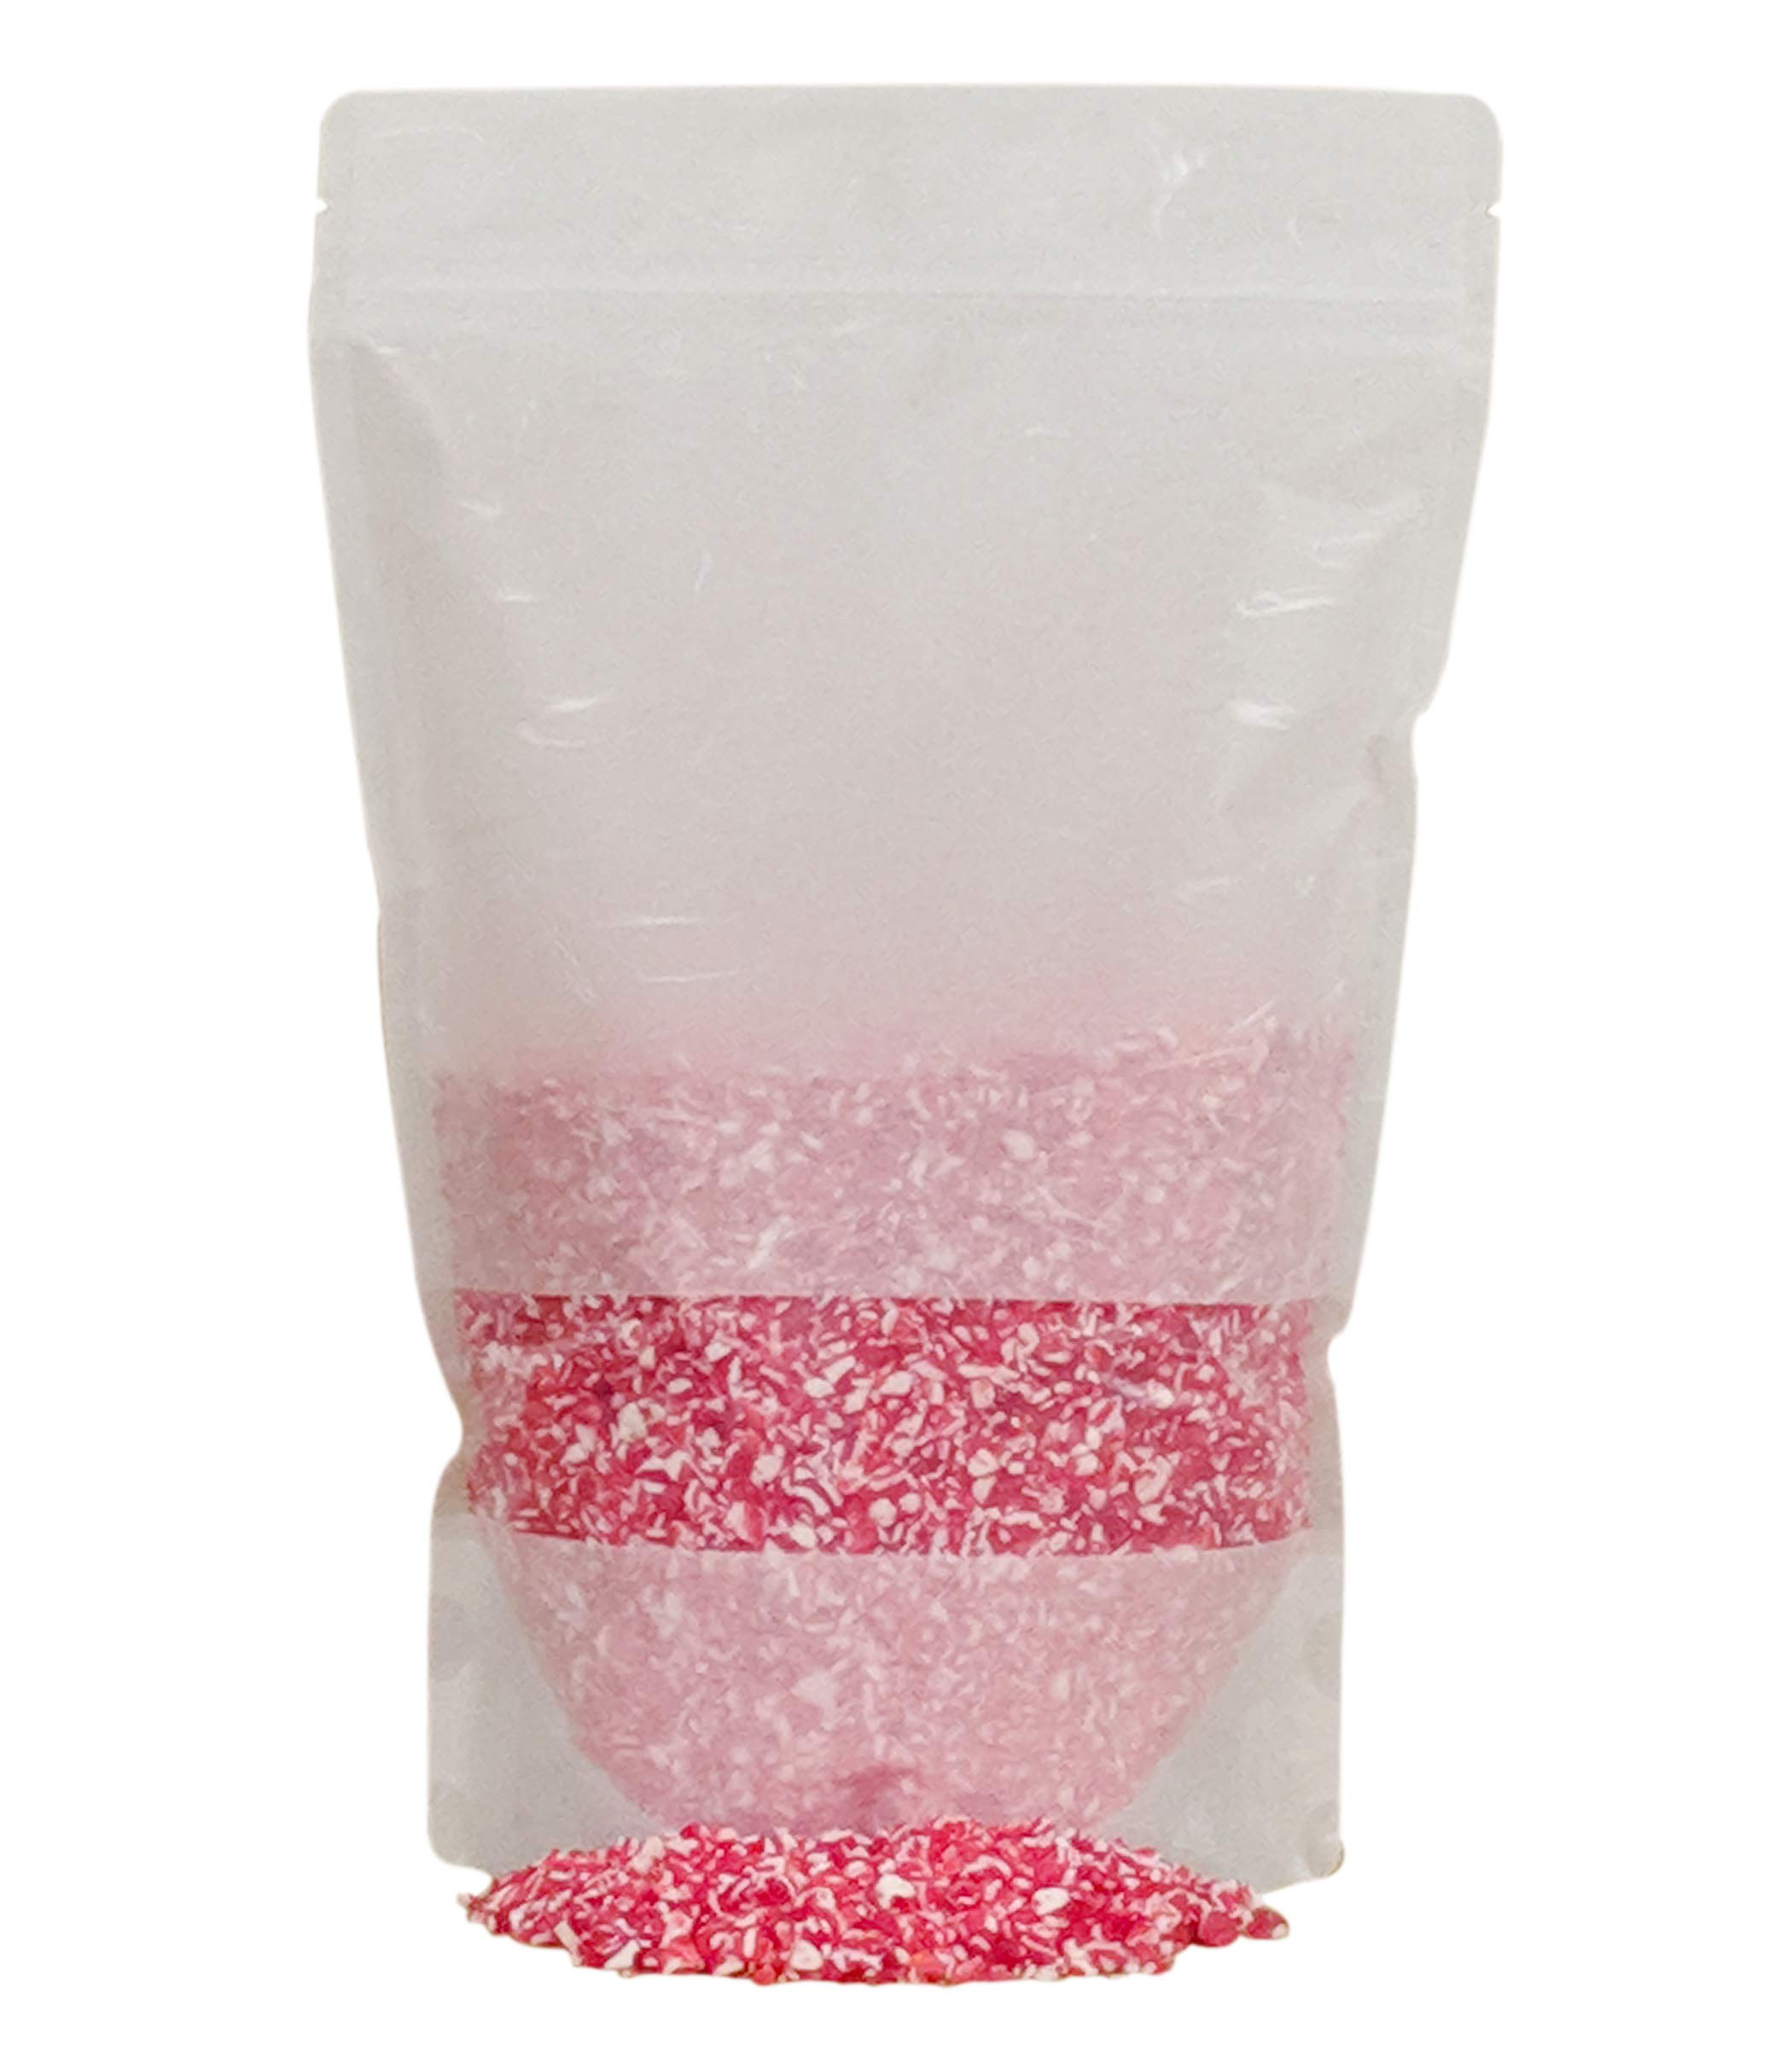 Festival Candy Cane Crunch - Crushed Peppermint Candy Topper Bits - Perfect Holiday Addition To Any Dessert Or Drink - Comes With Scoop And Recipe Card - Christmas Cookie Decorations, Candy Cane (2LB) by BRAND CASTLE